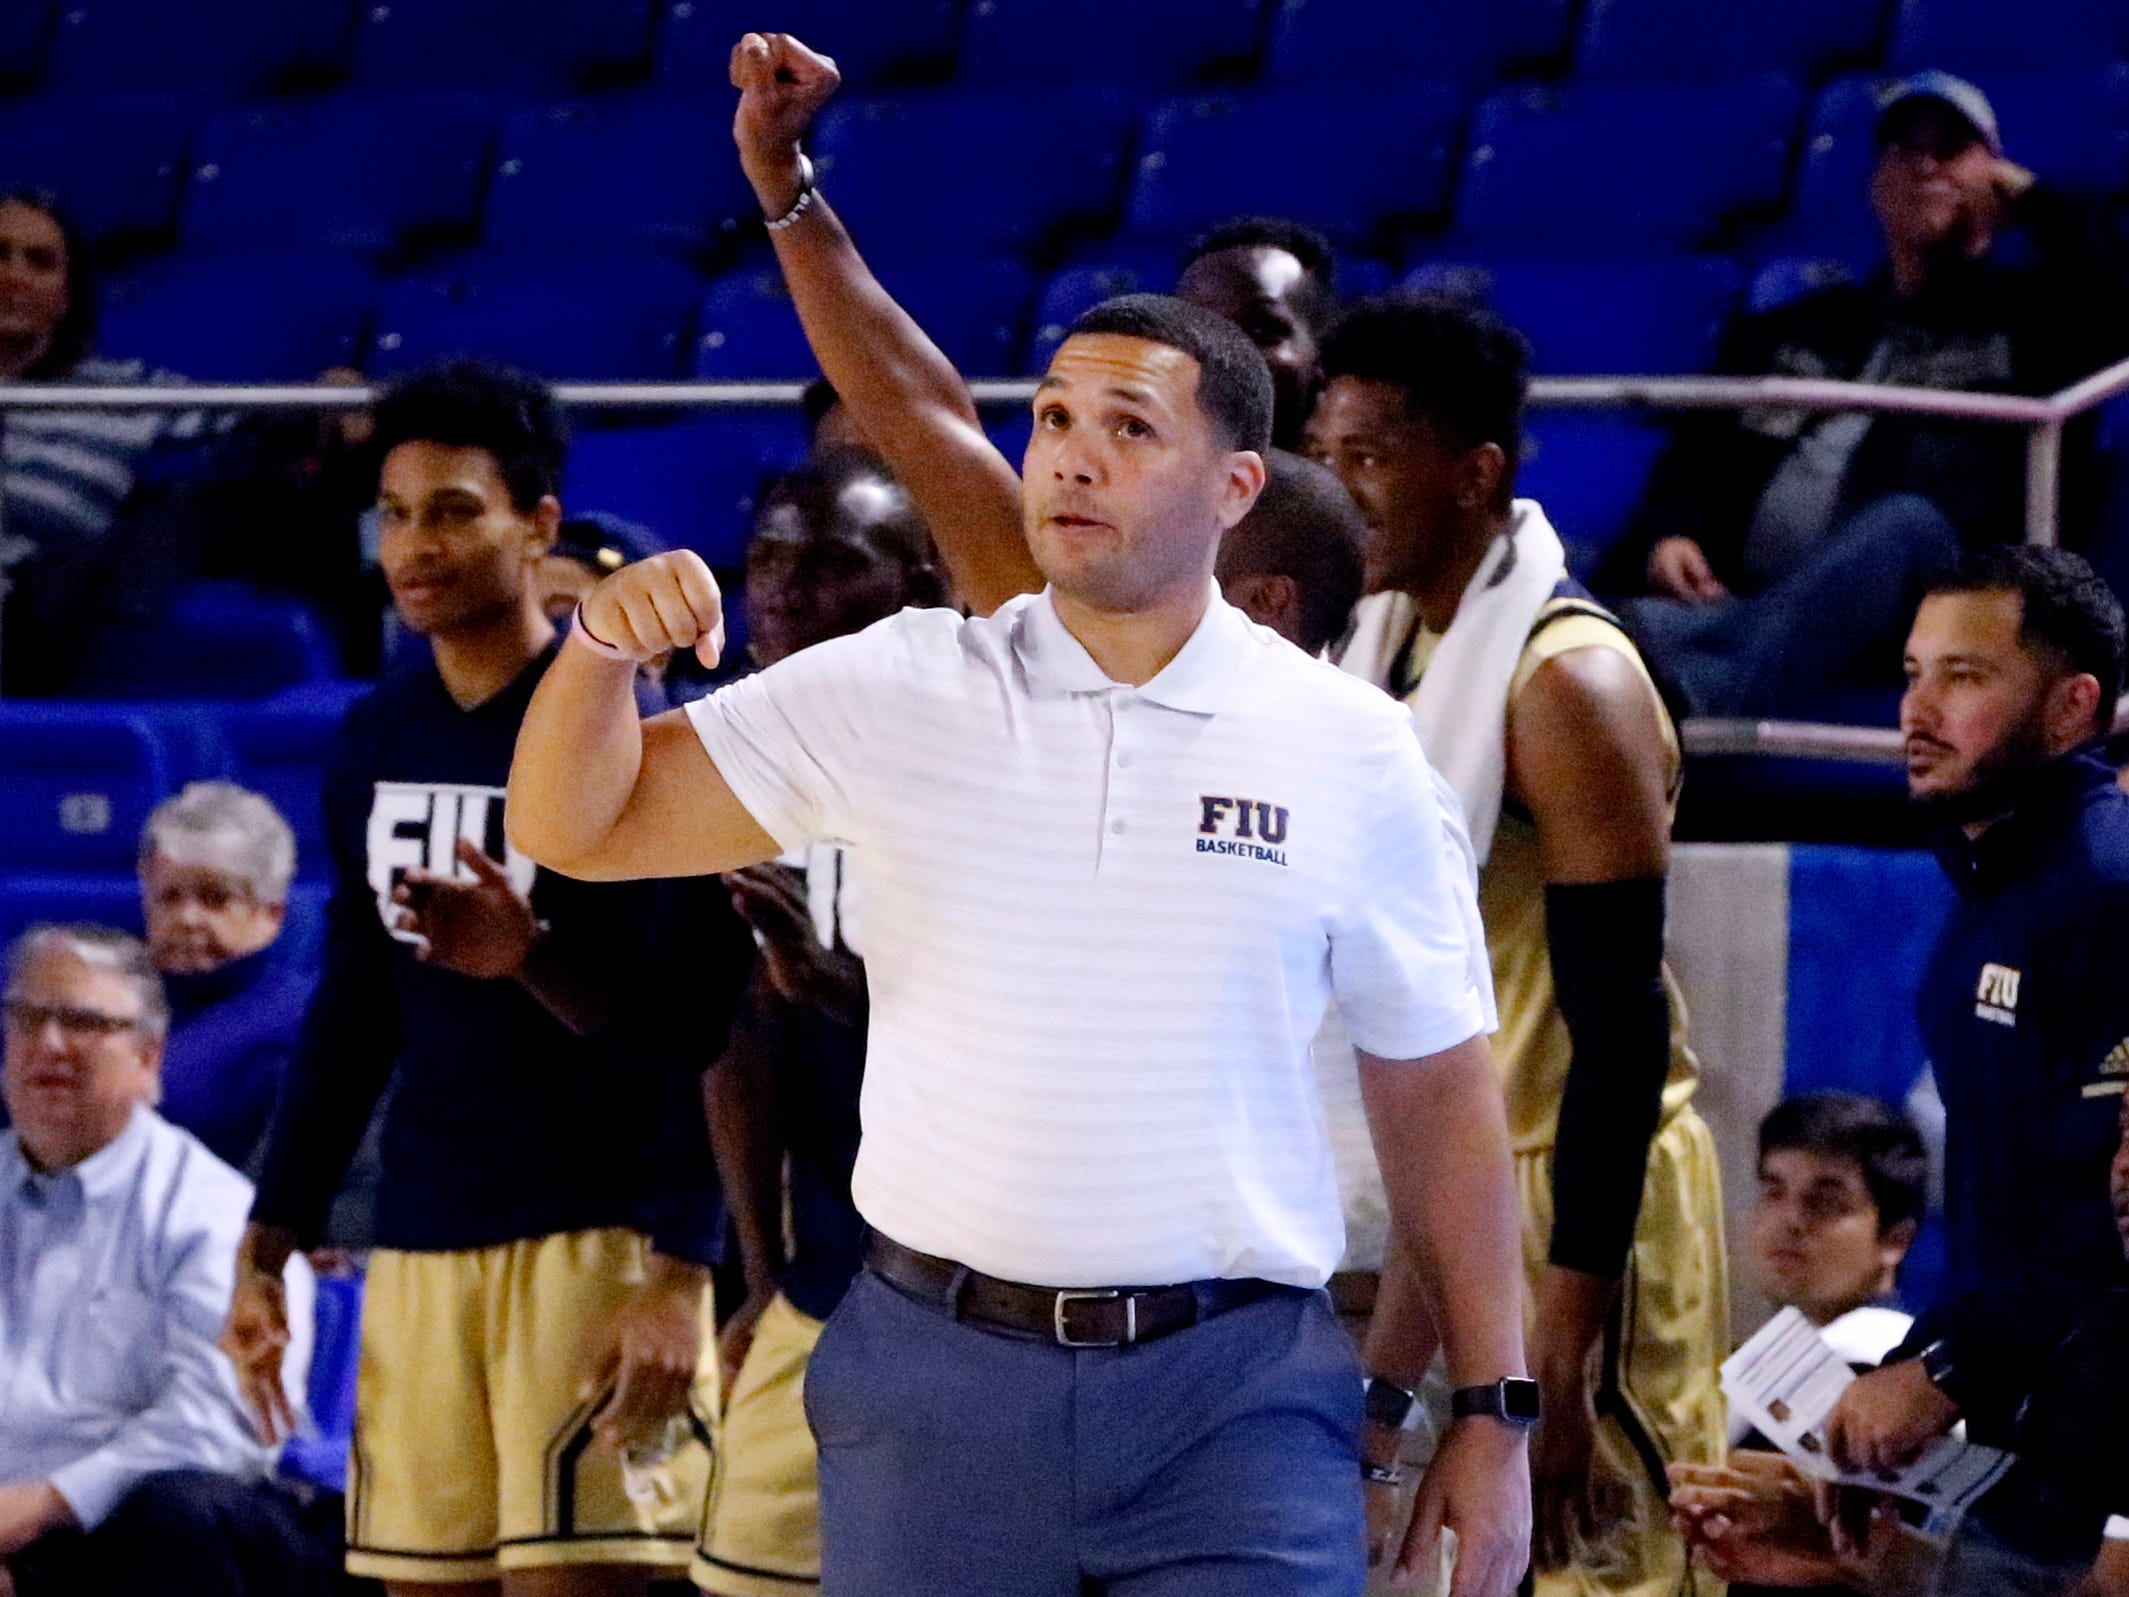 FIU's head coach Jeremy Ballard on the sidelines during the game against MTSU on Thursday Jan. 3, 2019, at MTSU.